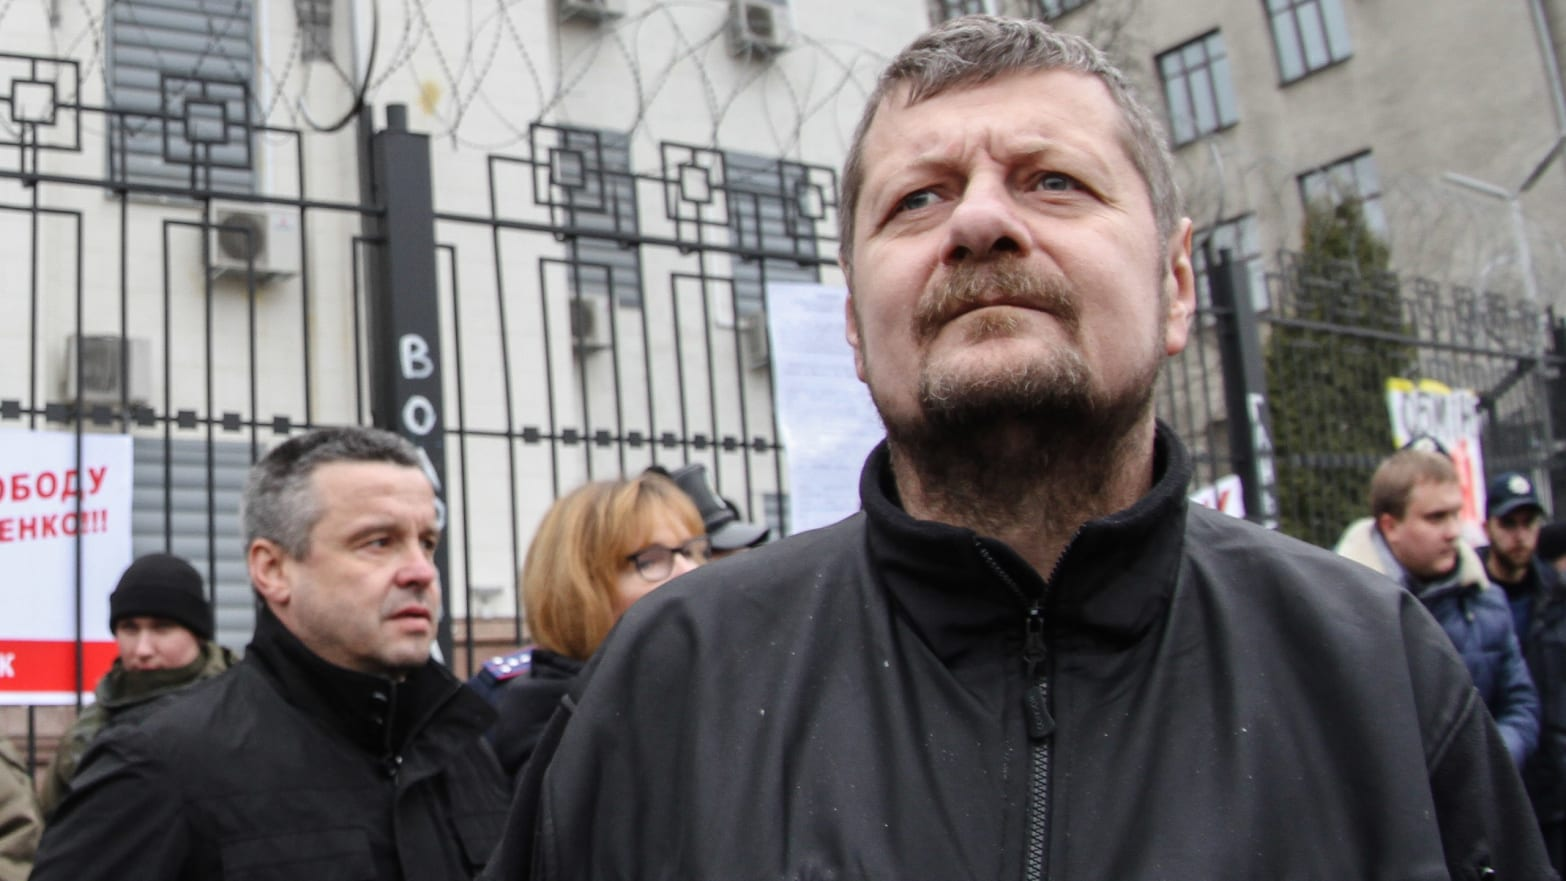 Radical Party member Igor Mosiychuk is seen during a rally in front of Russian Embassy. A Ukrainian lawmaker was wounded and his bodyguard killed on October 25, 2017 in a bombing attack that his party called an assassination attempt.